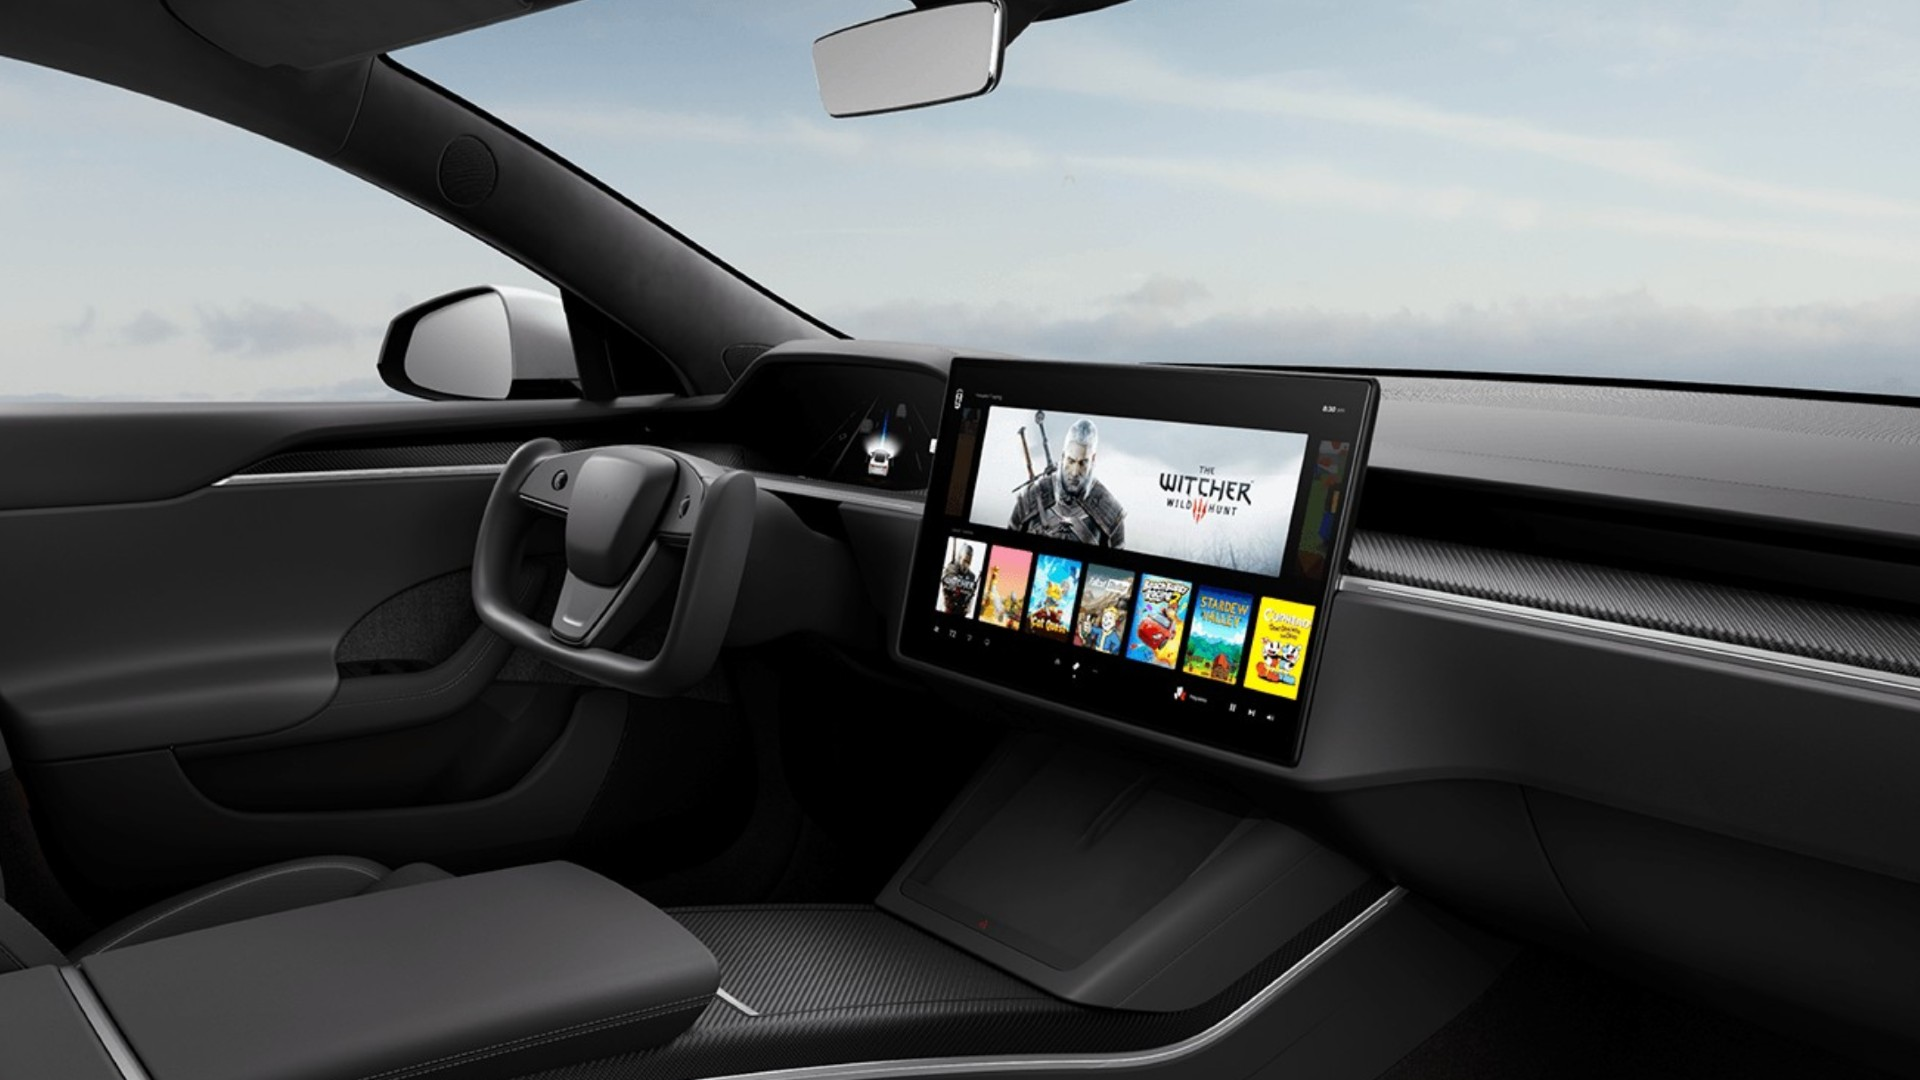 Finally, you can play The Witcher 3 in your Tesla